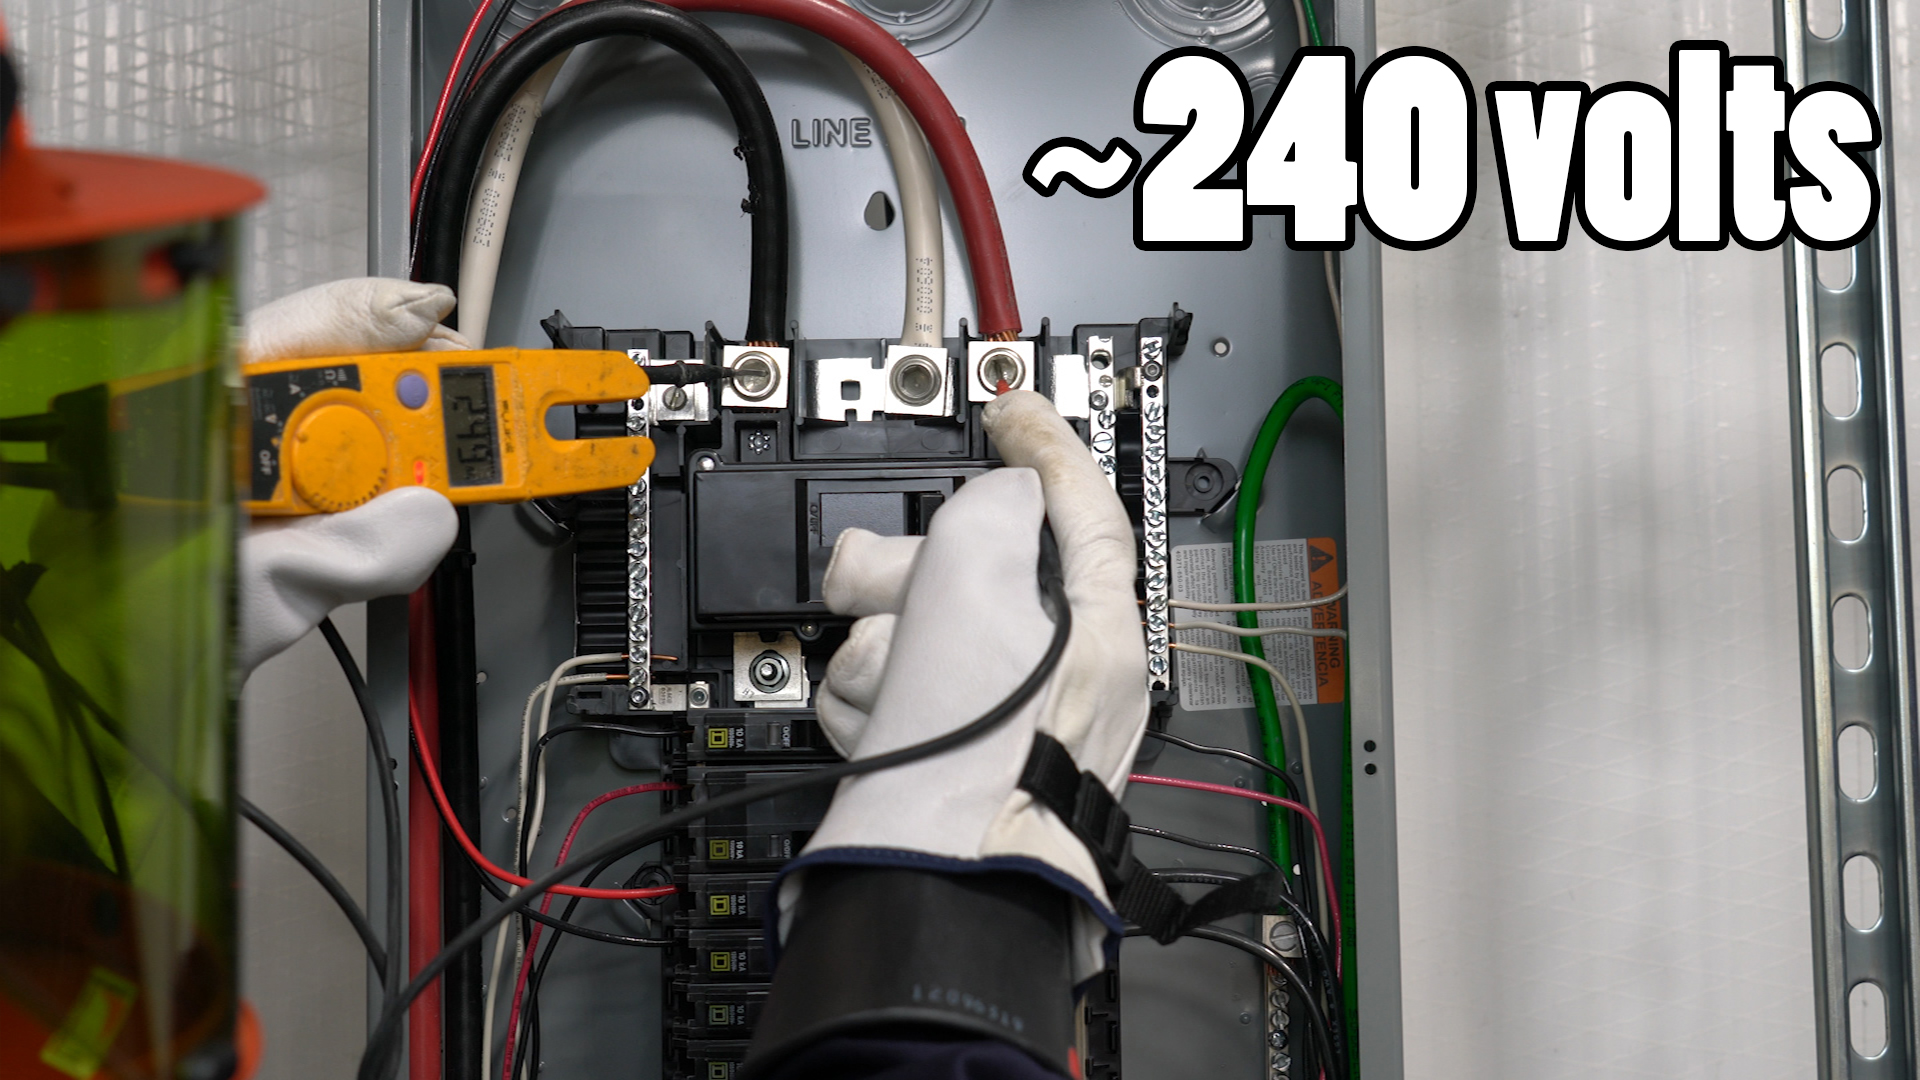 Electrician U — Episode 25 - How To Use A Multimeter - USING